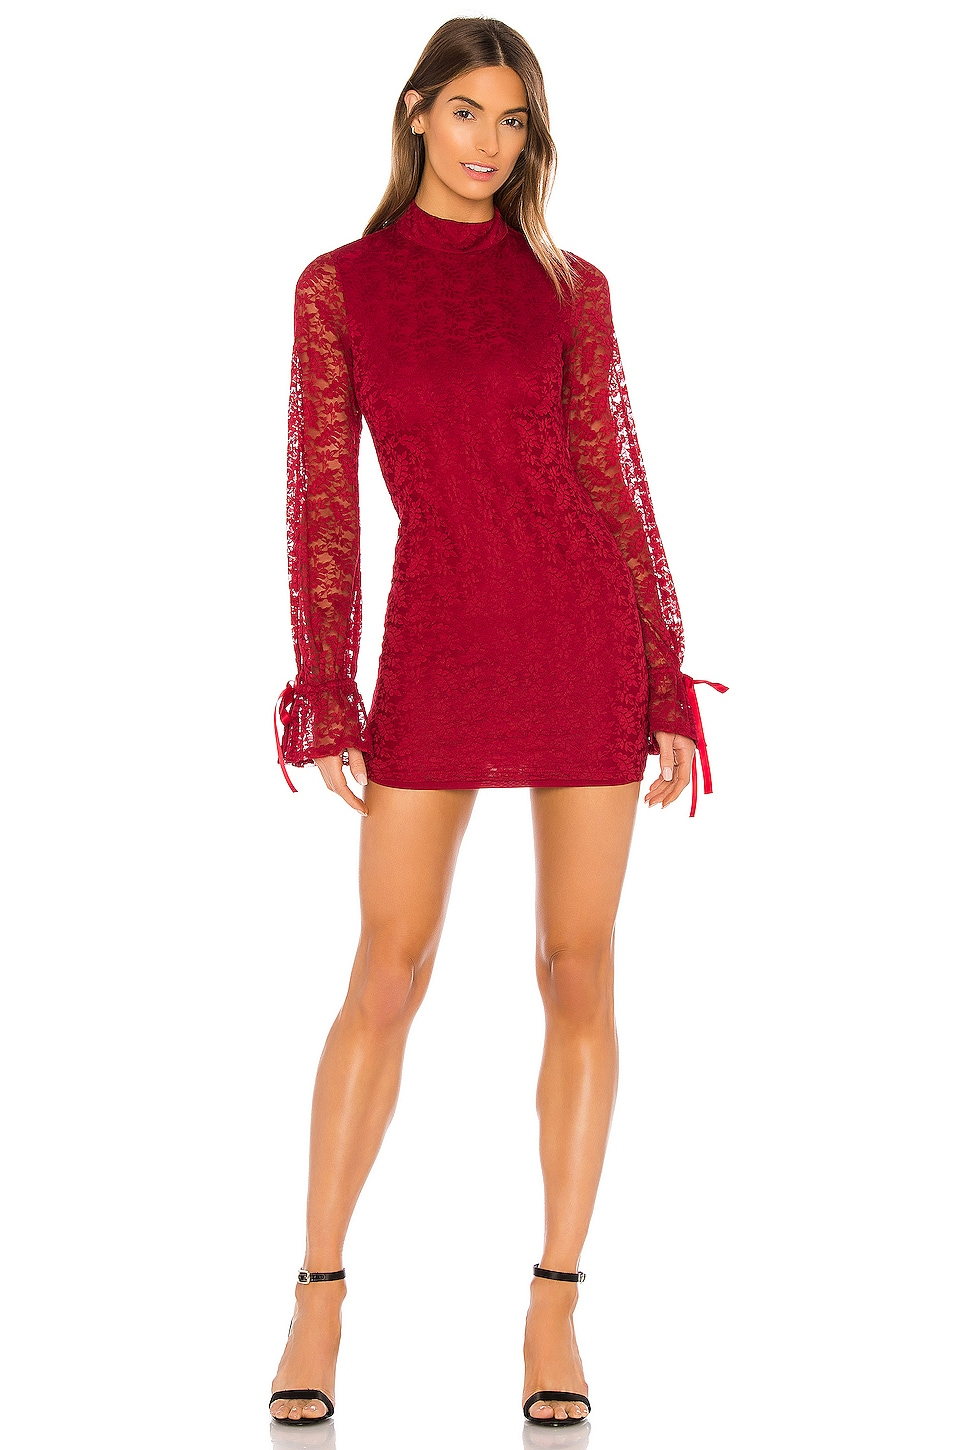 Lovers + Friends Talia Mini Dress in Ruby Red